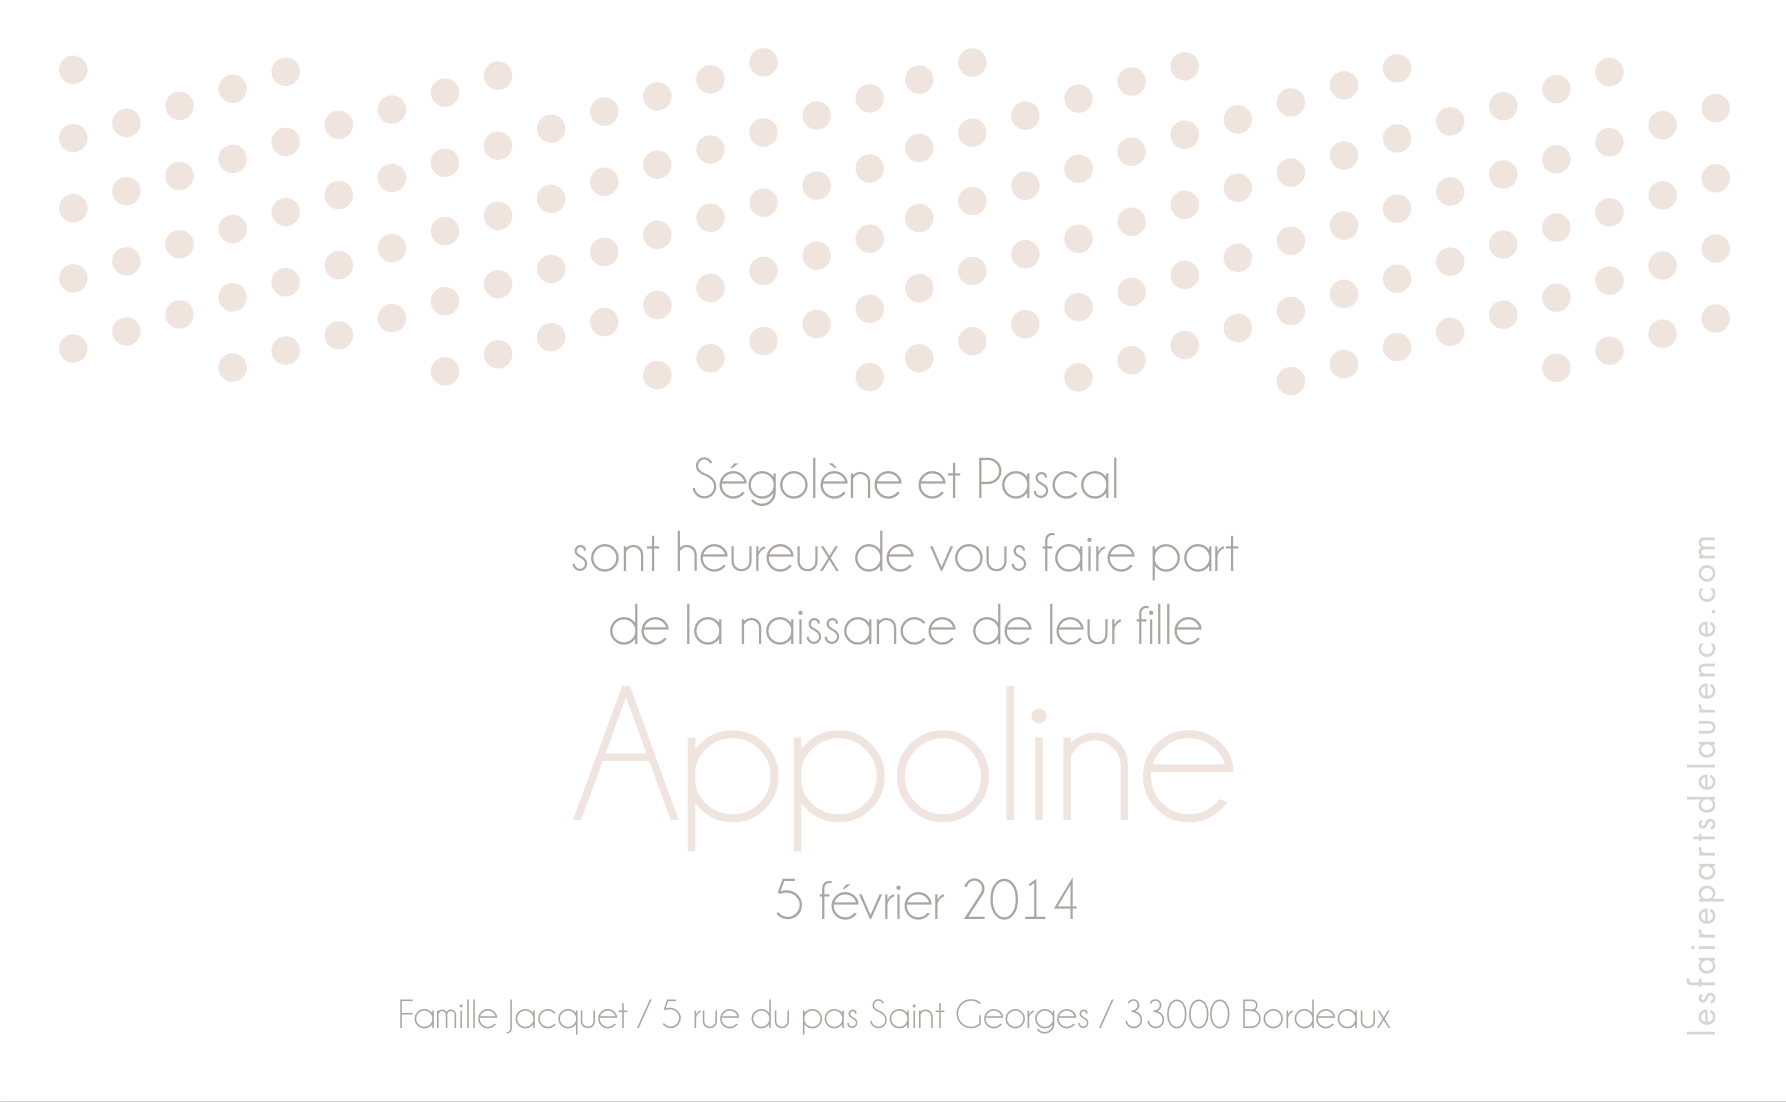 Appoline rectangulaire verso 2 rose.png